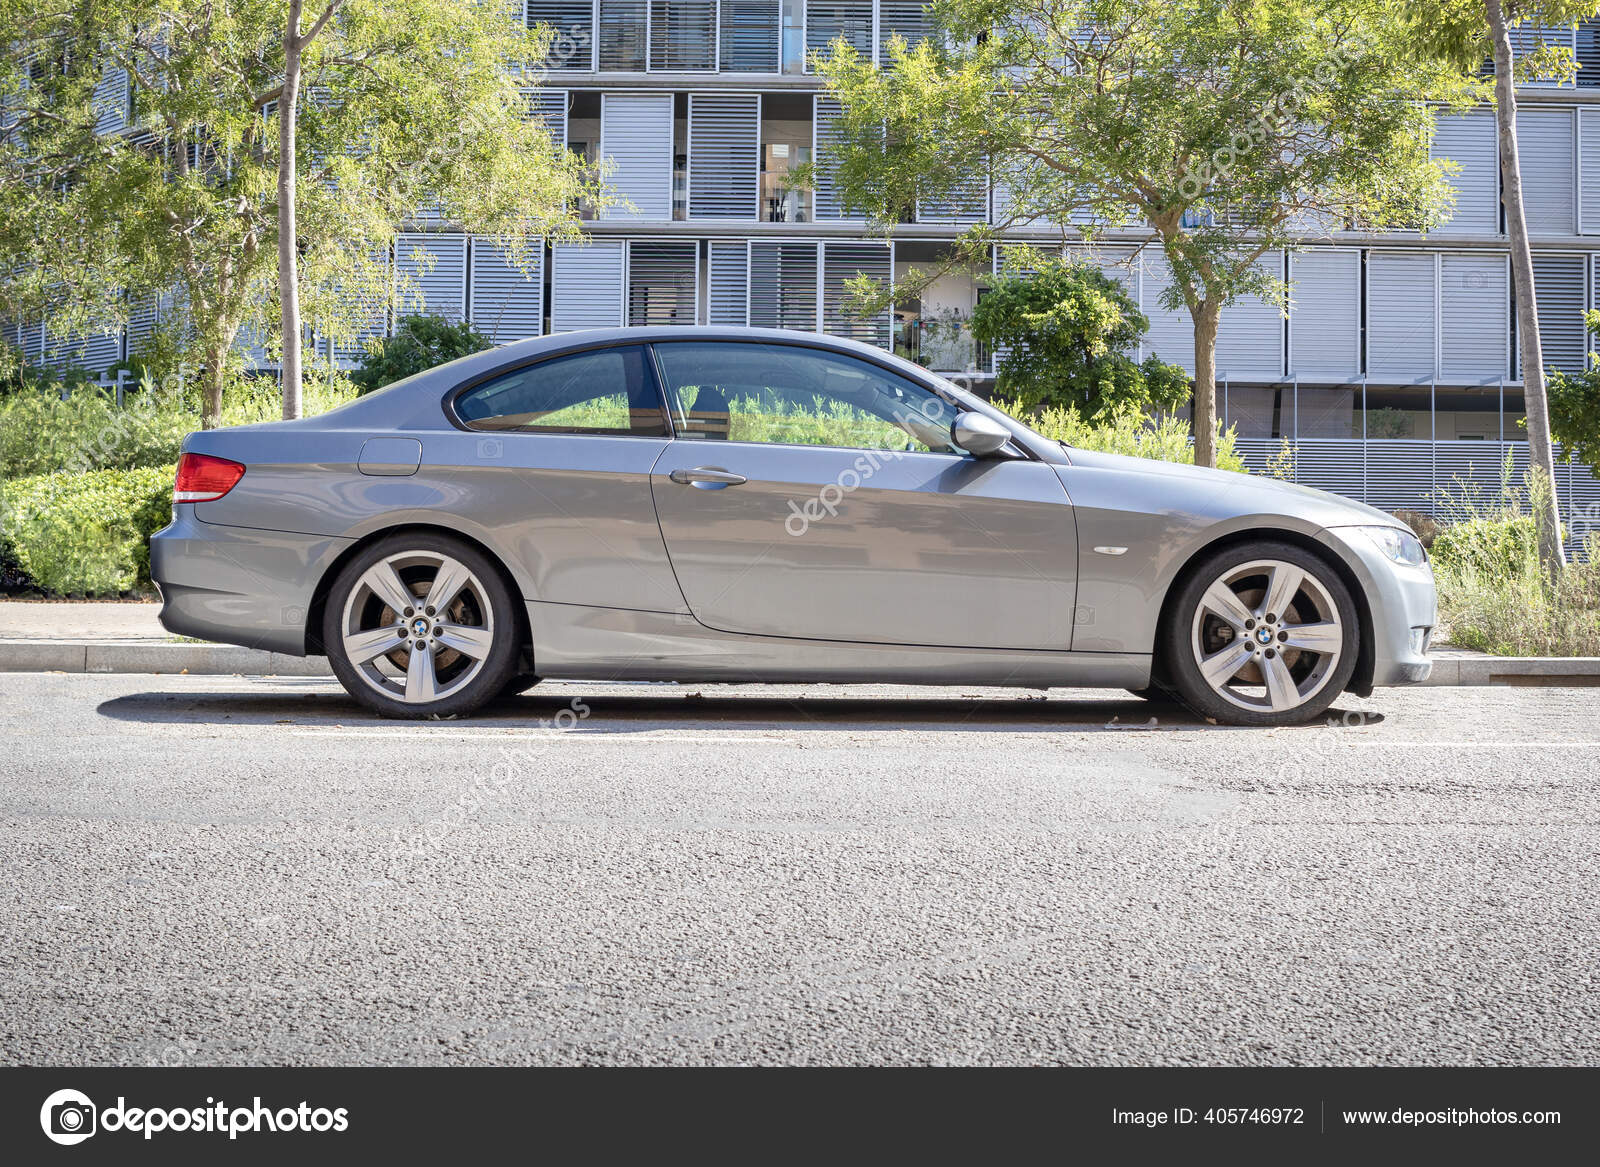 Barcelona Spain August 2020 2006 Bmw Series Coupe E92 Side Stock Editorial Photo C 9377 405746972